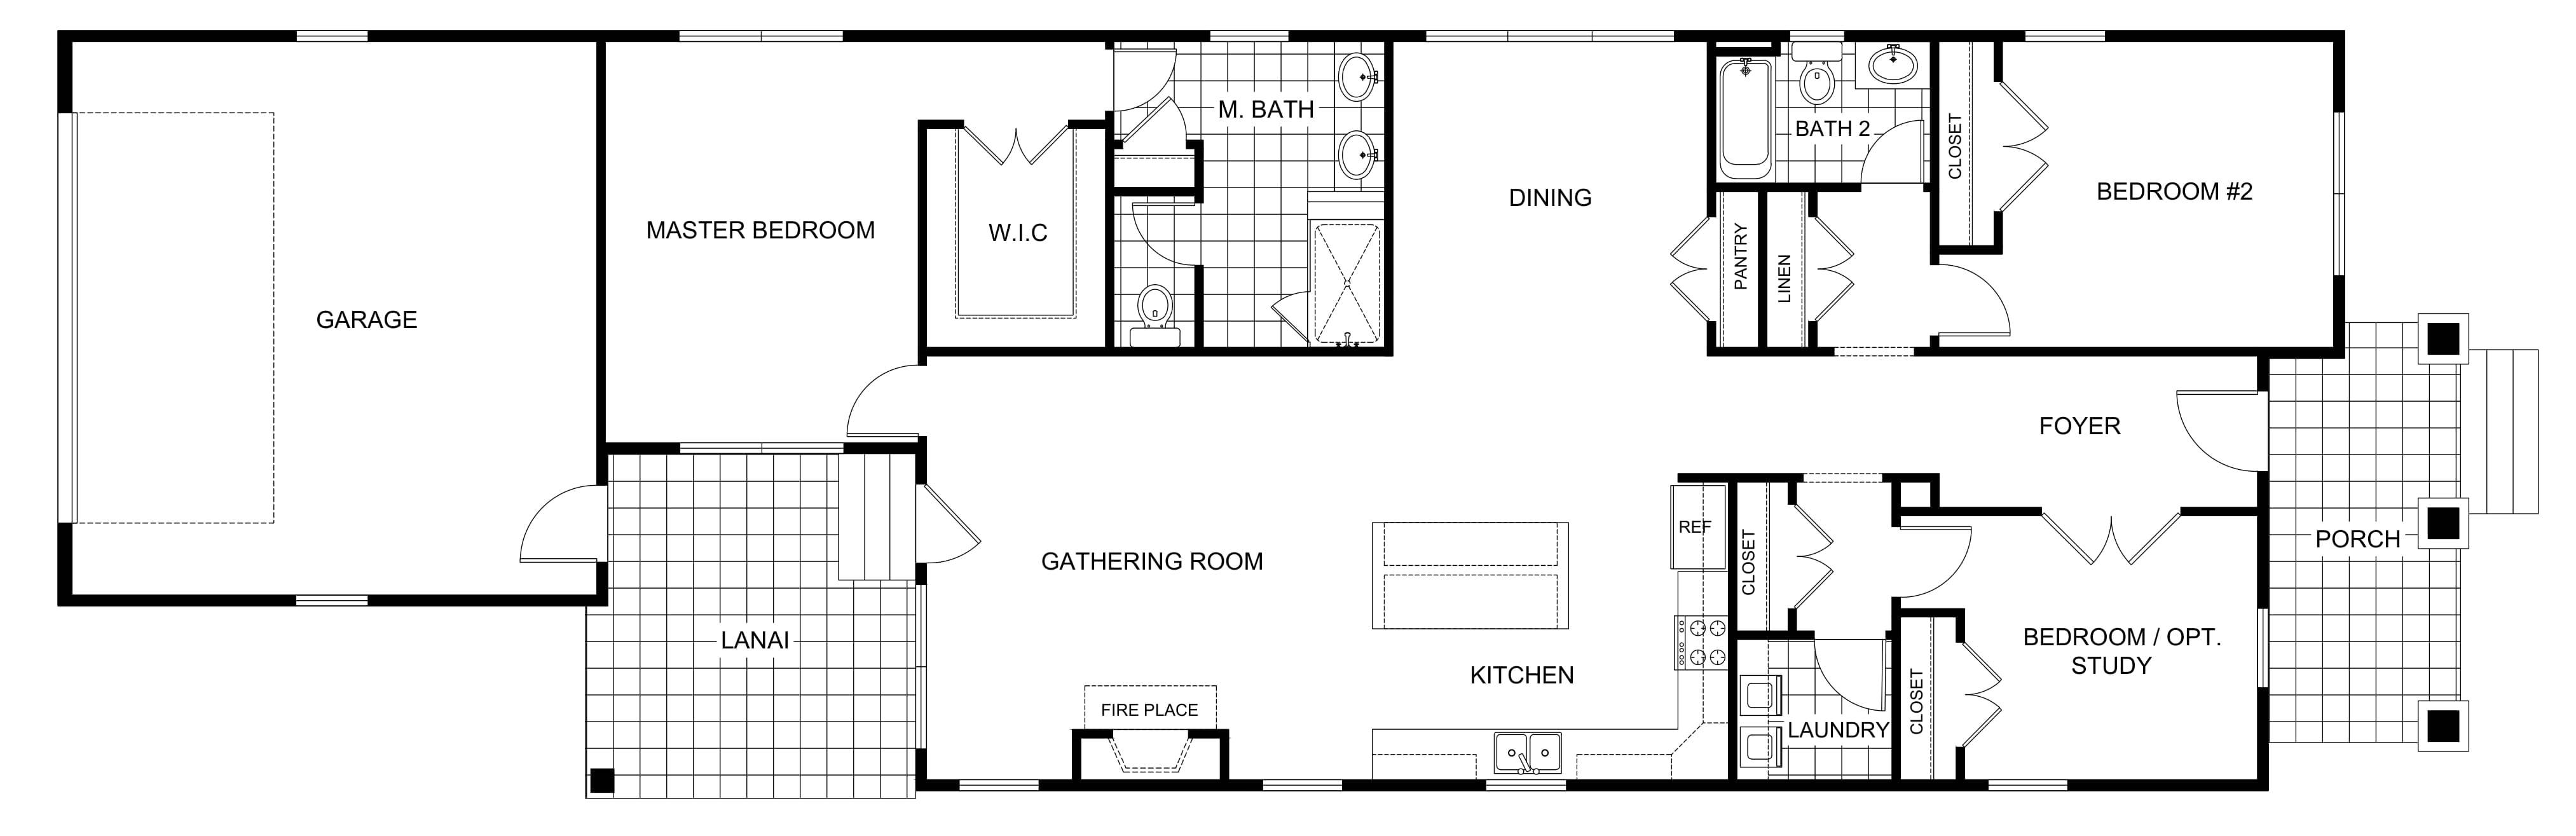 2D Floor Plan Design Services Sample